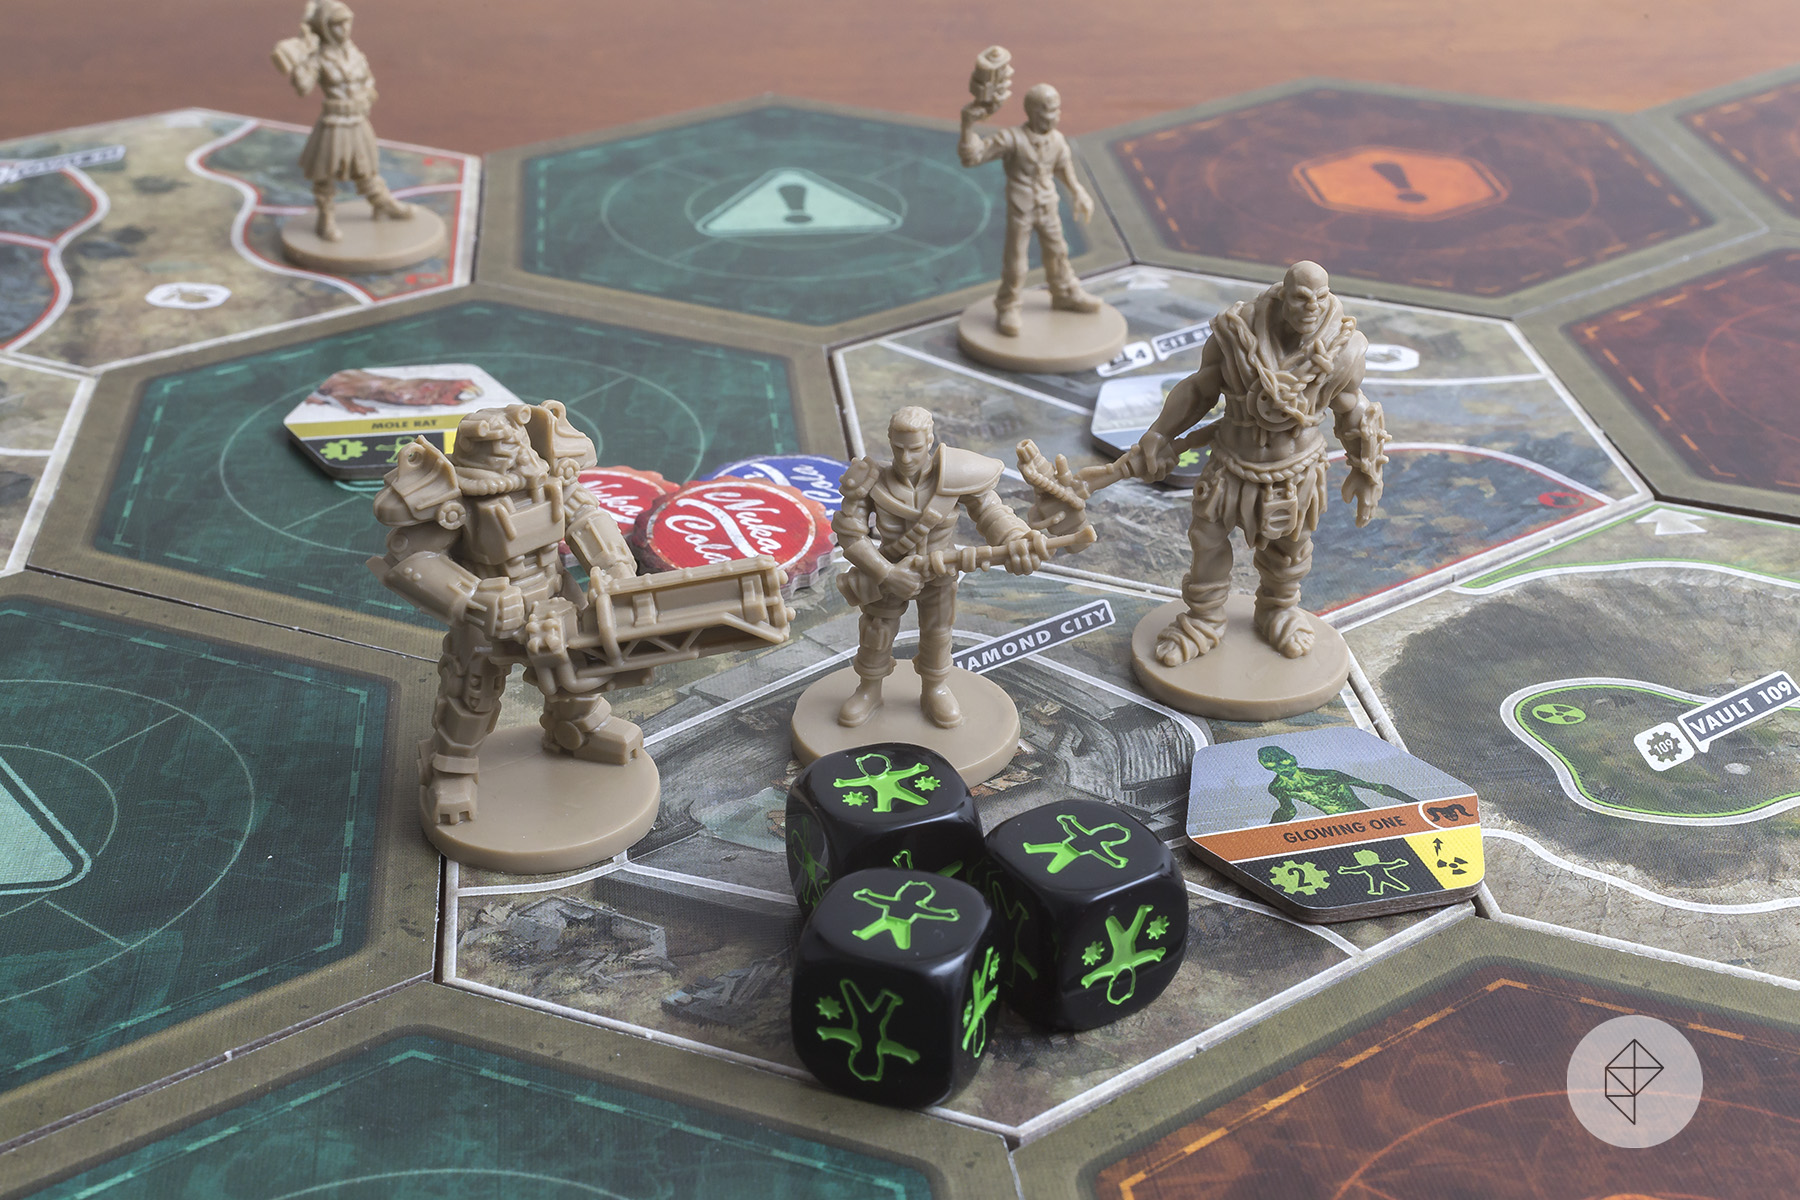 Fallout board game celebrates the series' excellent storytelling